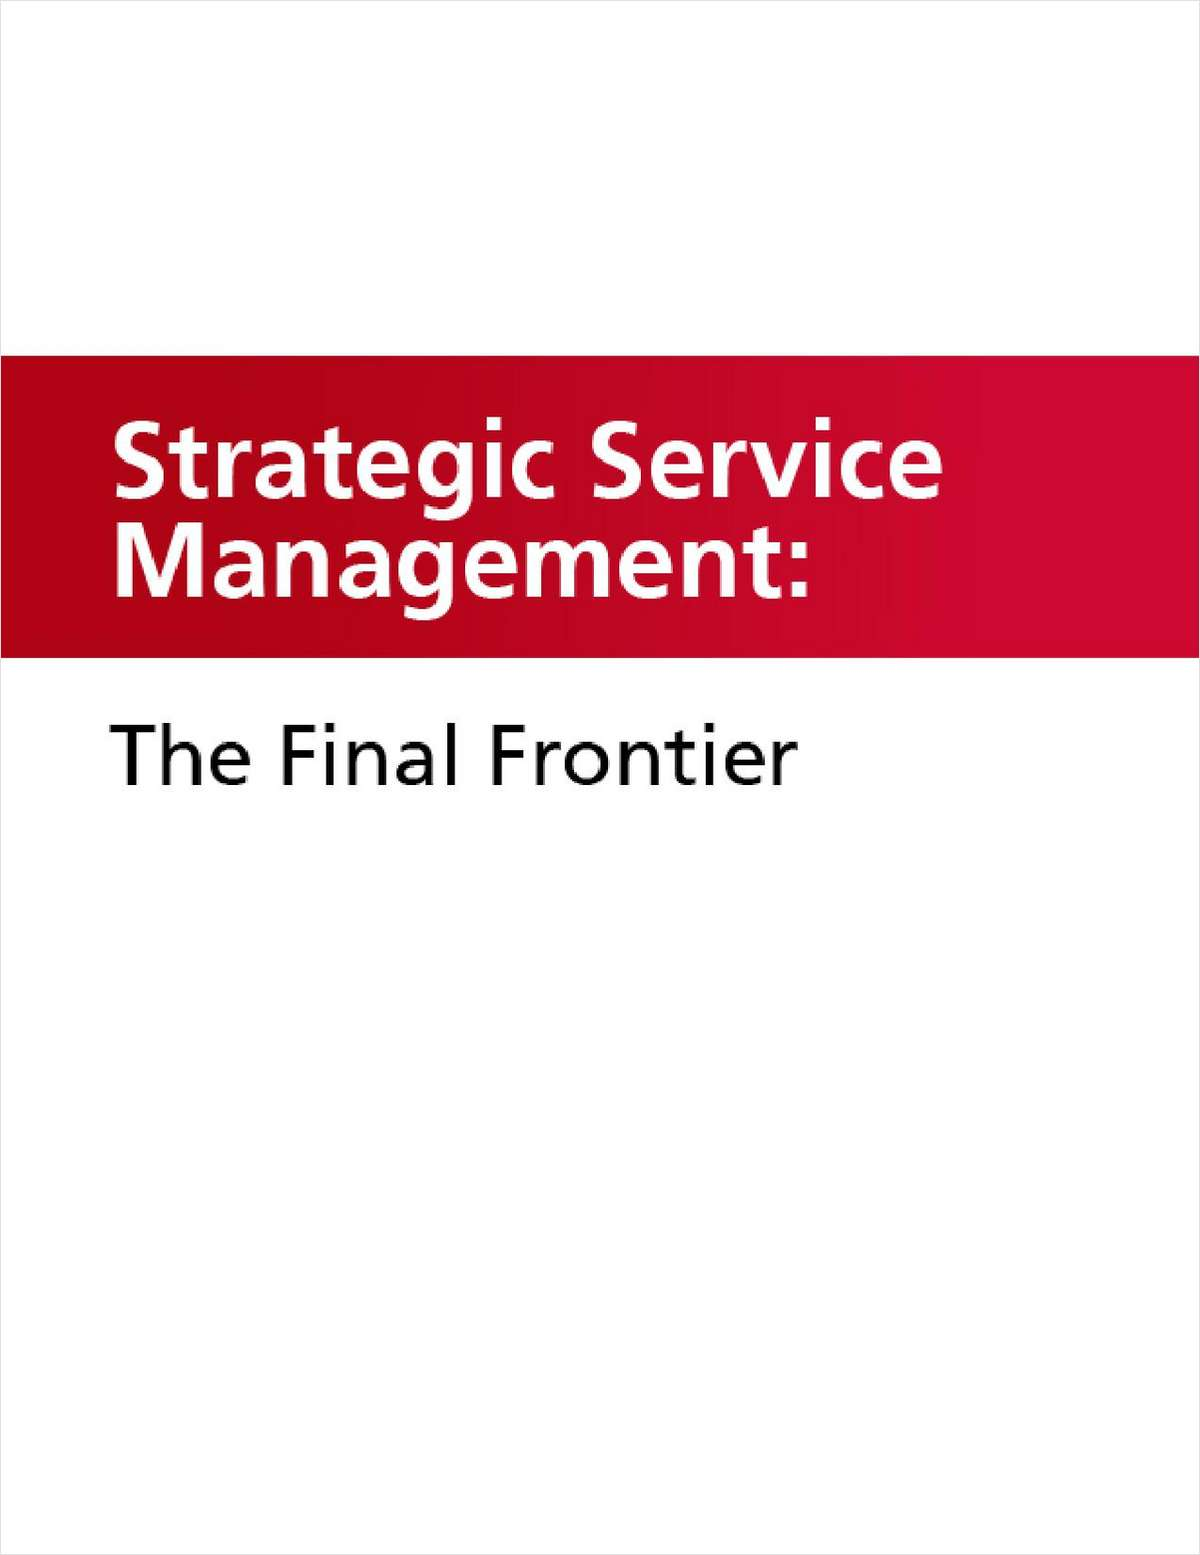 Strategic Service Management: The Final Frontier